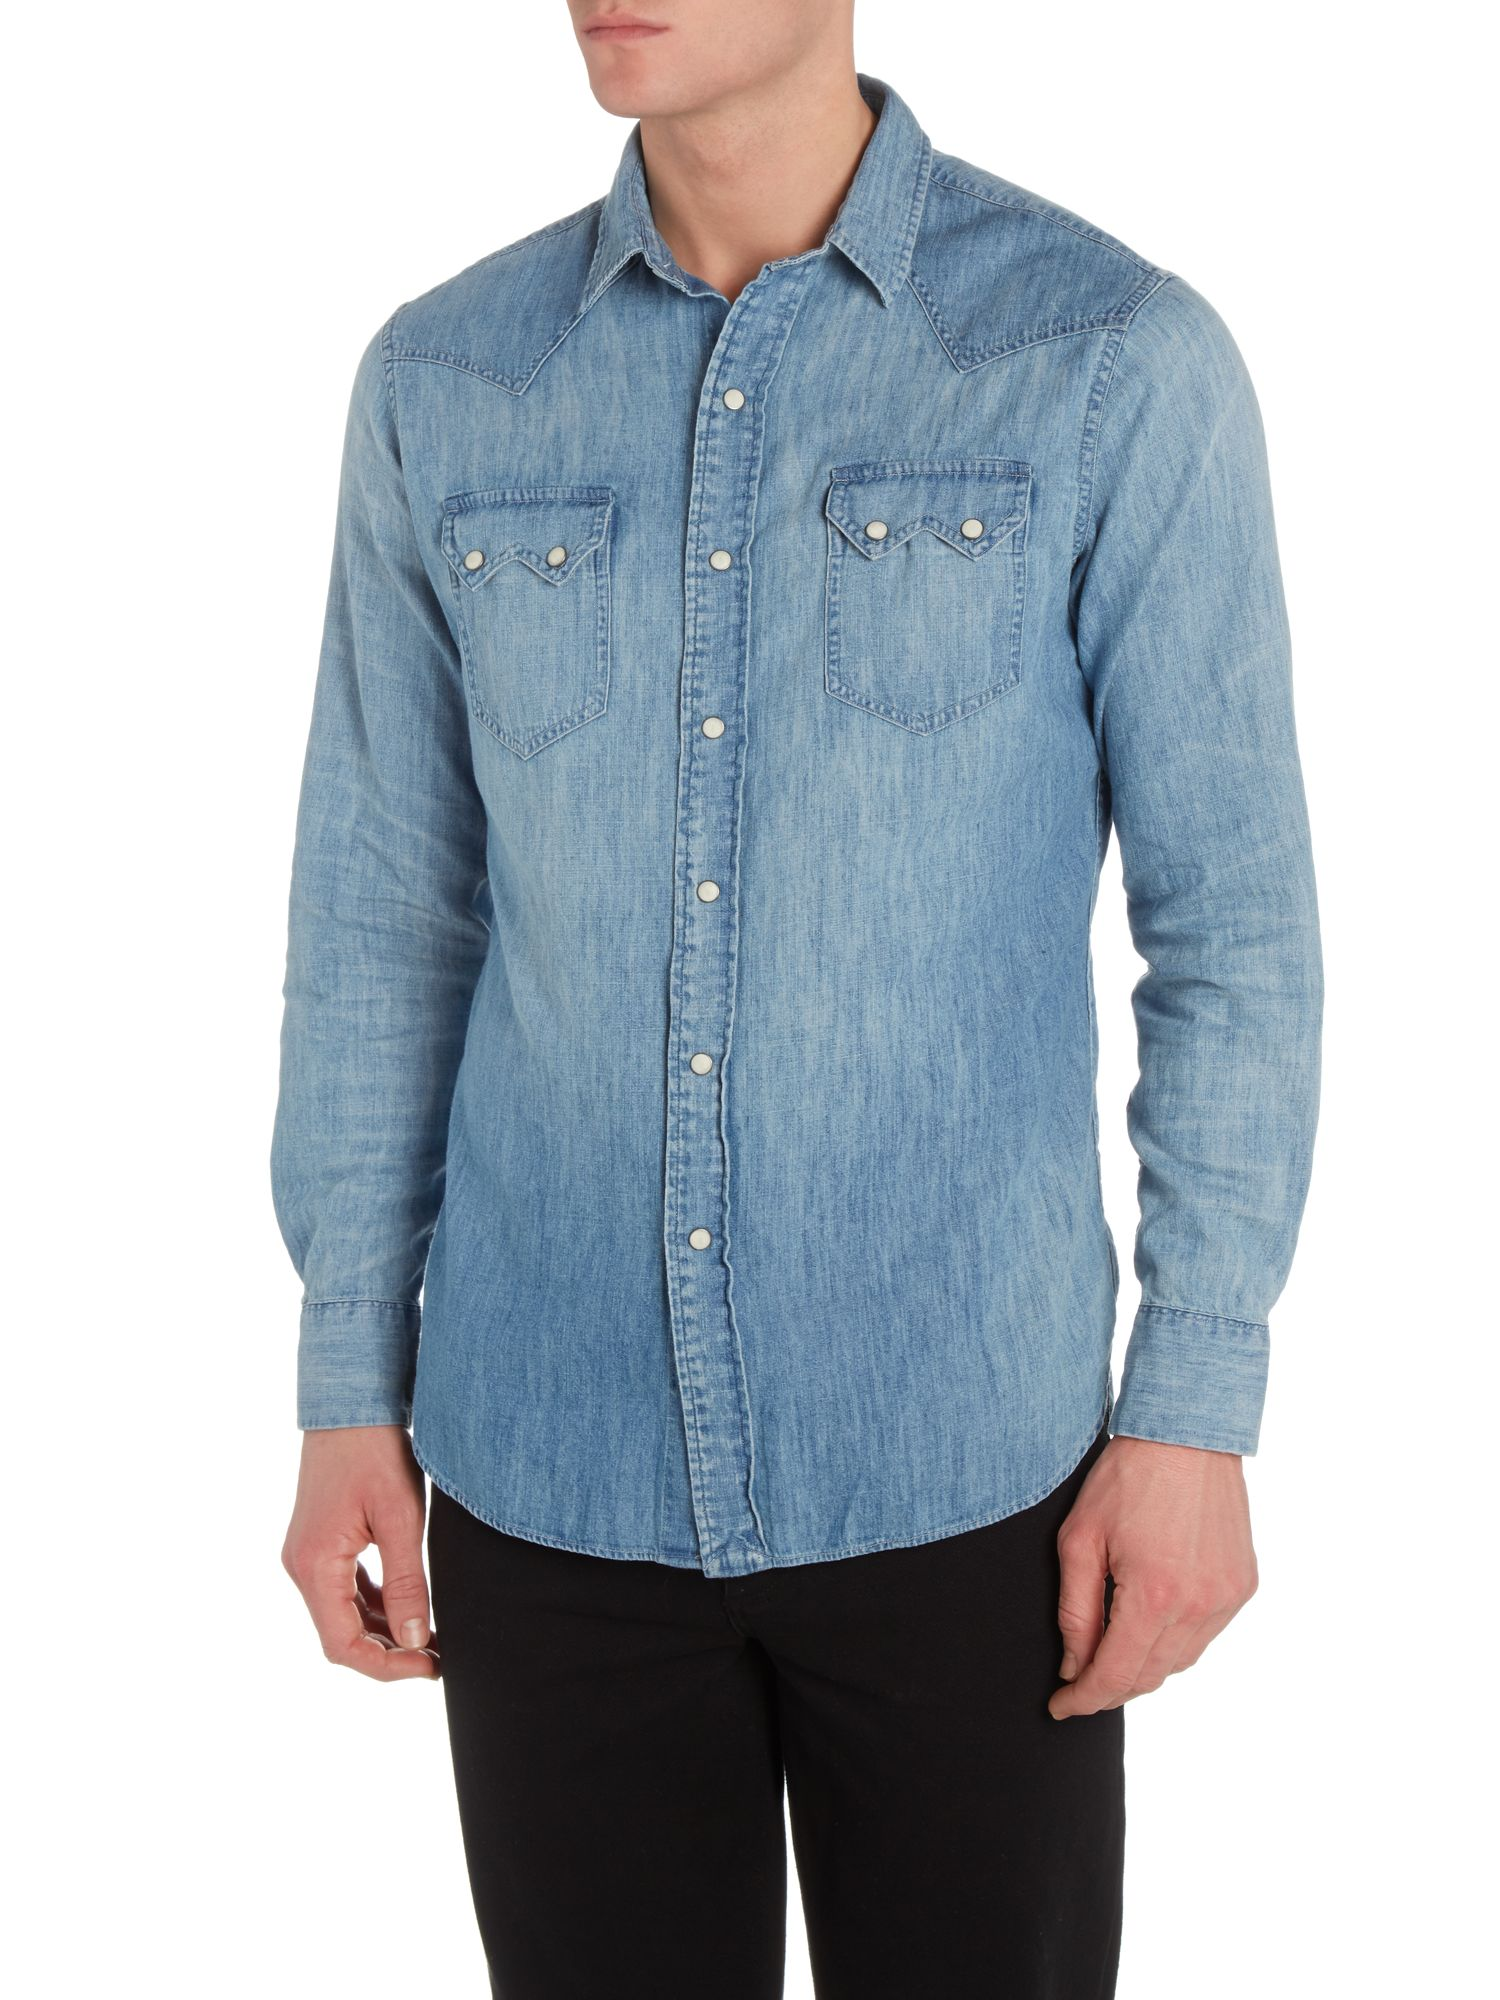 Western chambray custom fit shirt